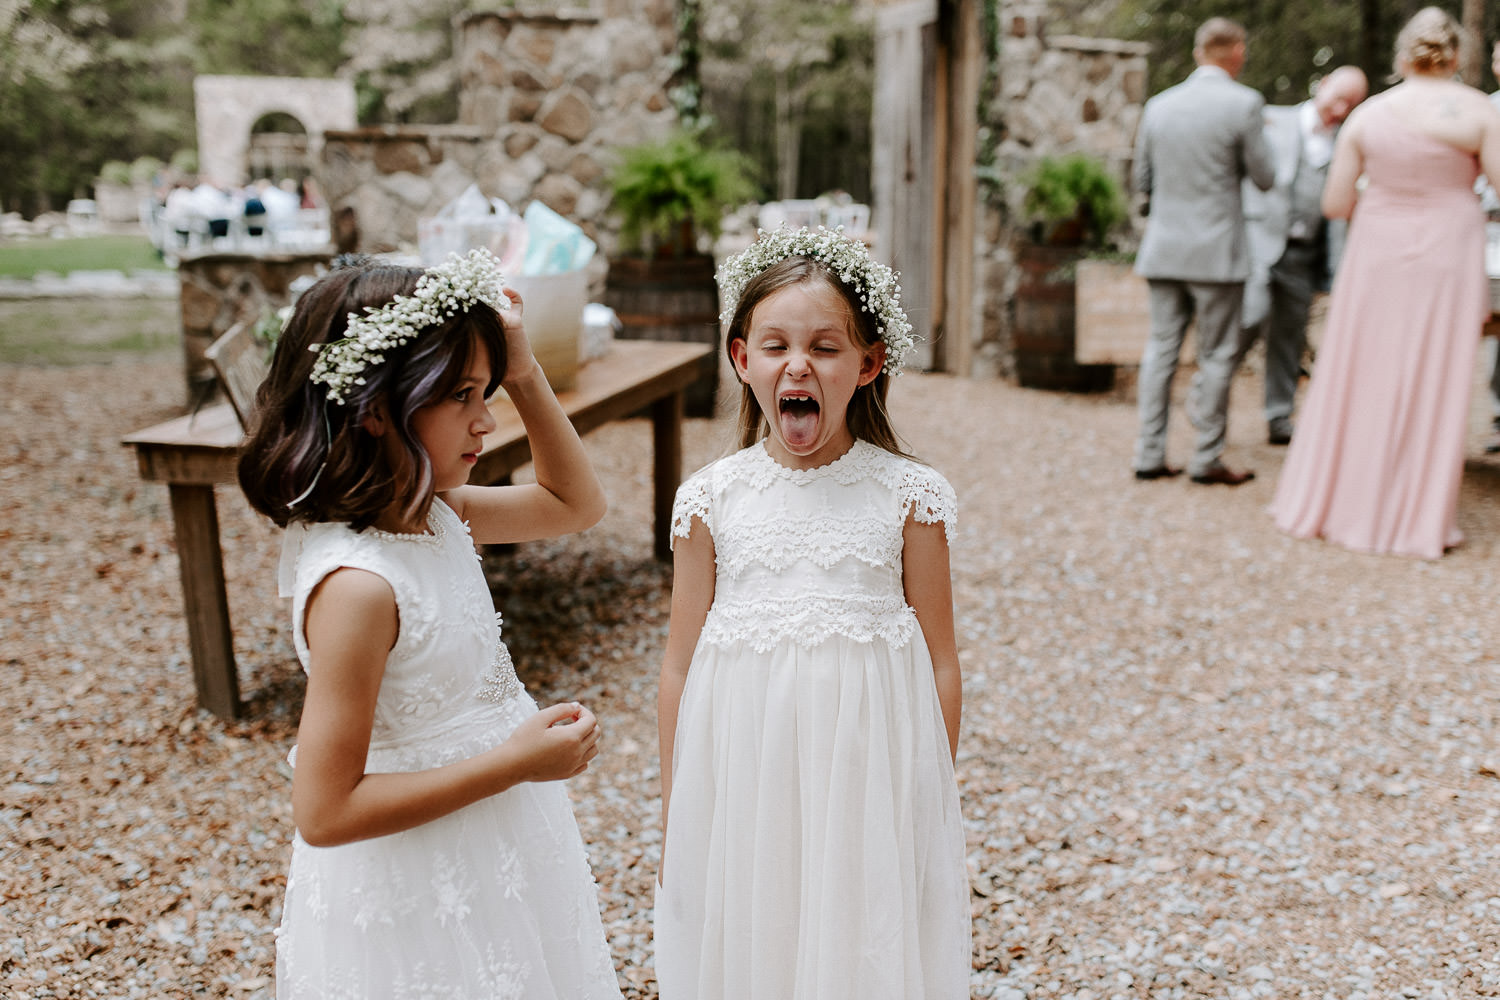 flower girls sticking out tongue